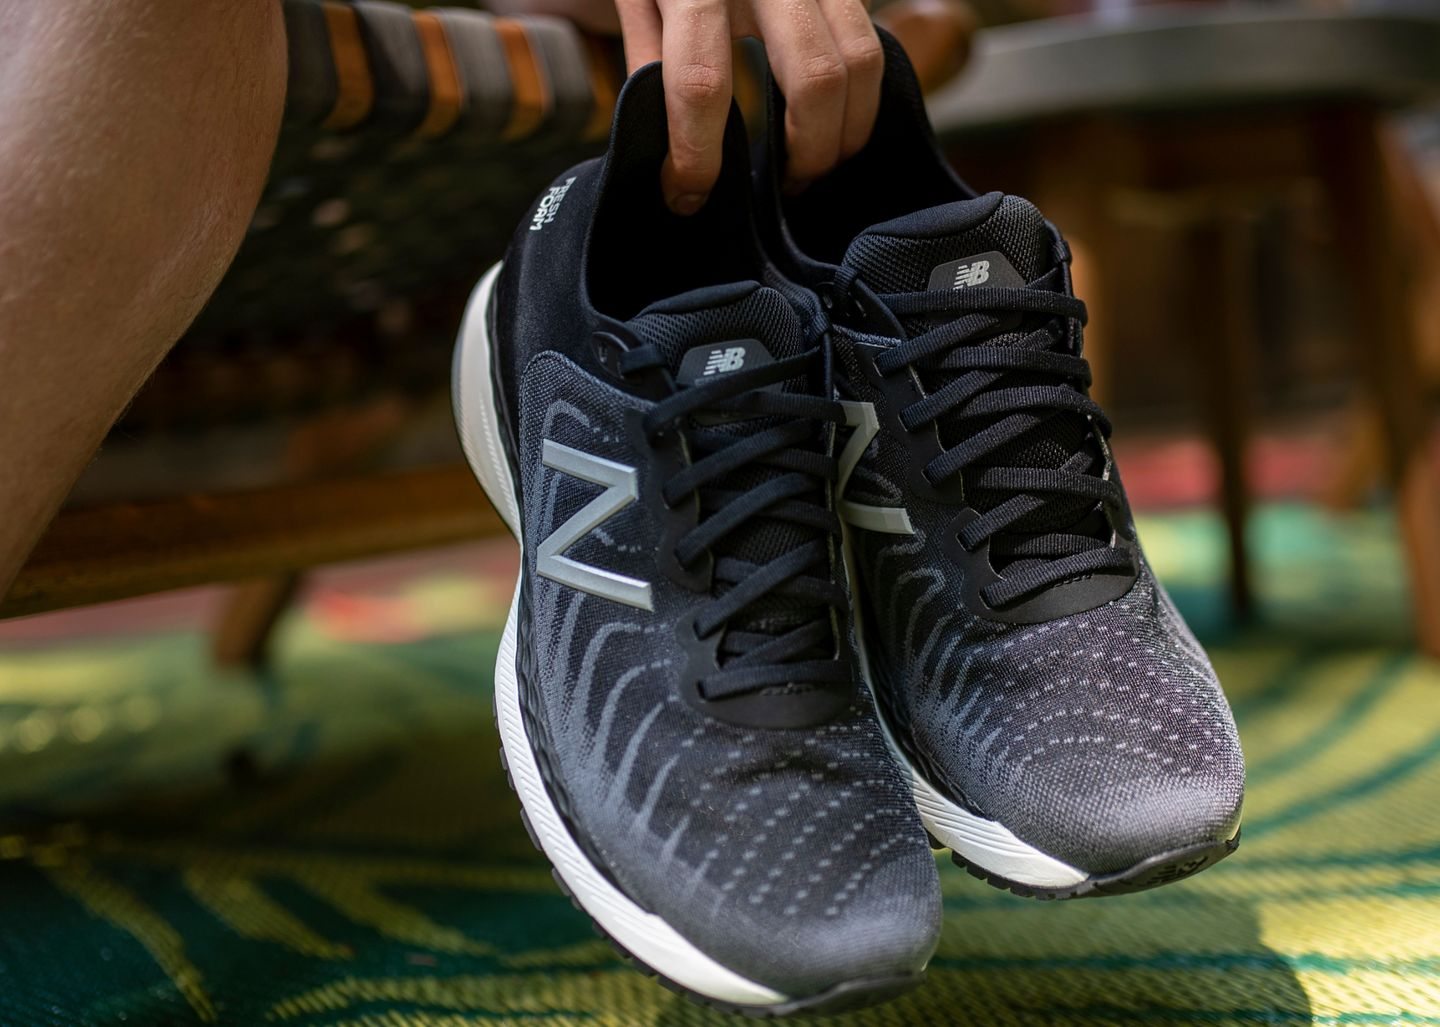 Cañón Mutuo Contaminar  Best New Balance Running Shoes 2021 | Buyer's Guide